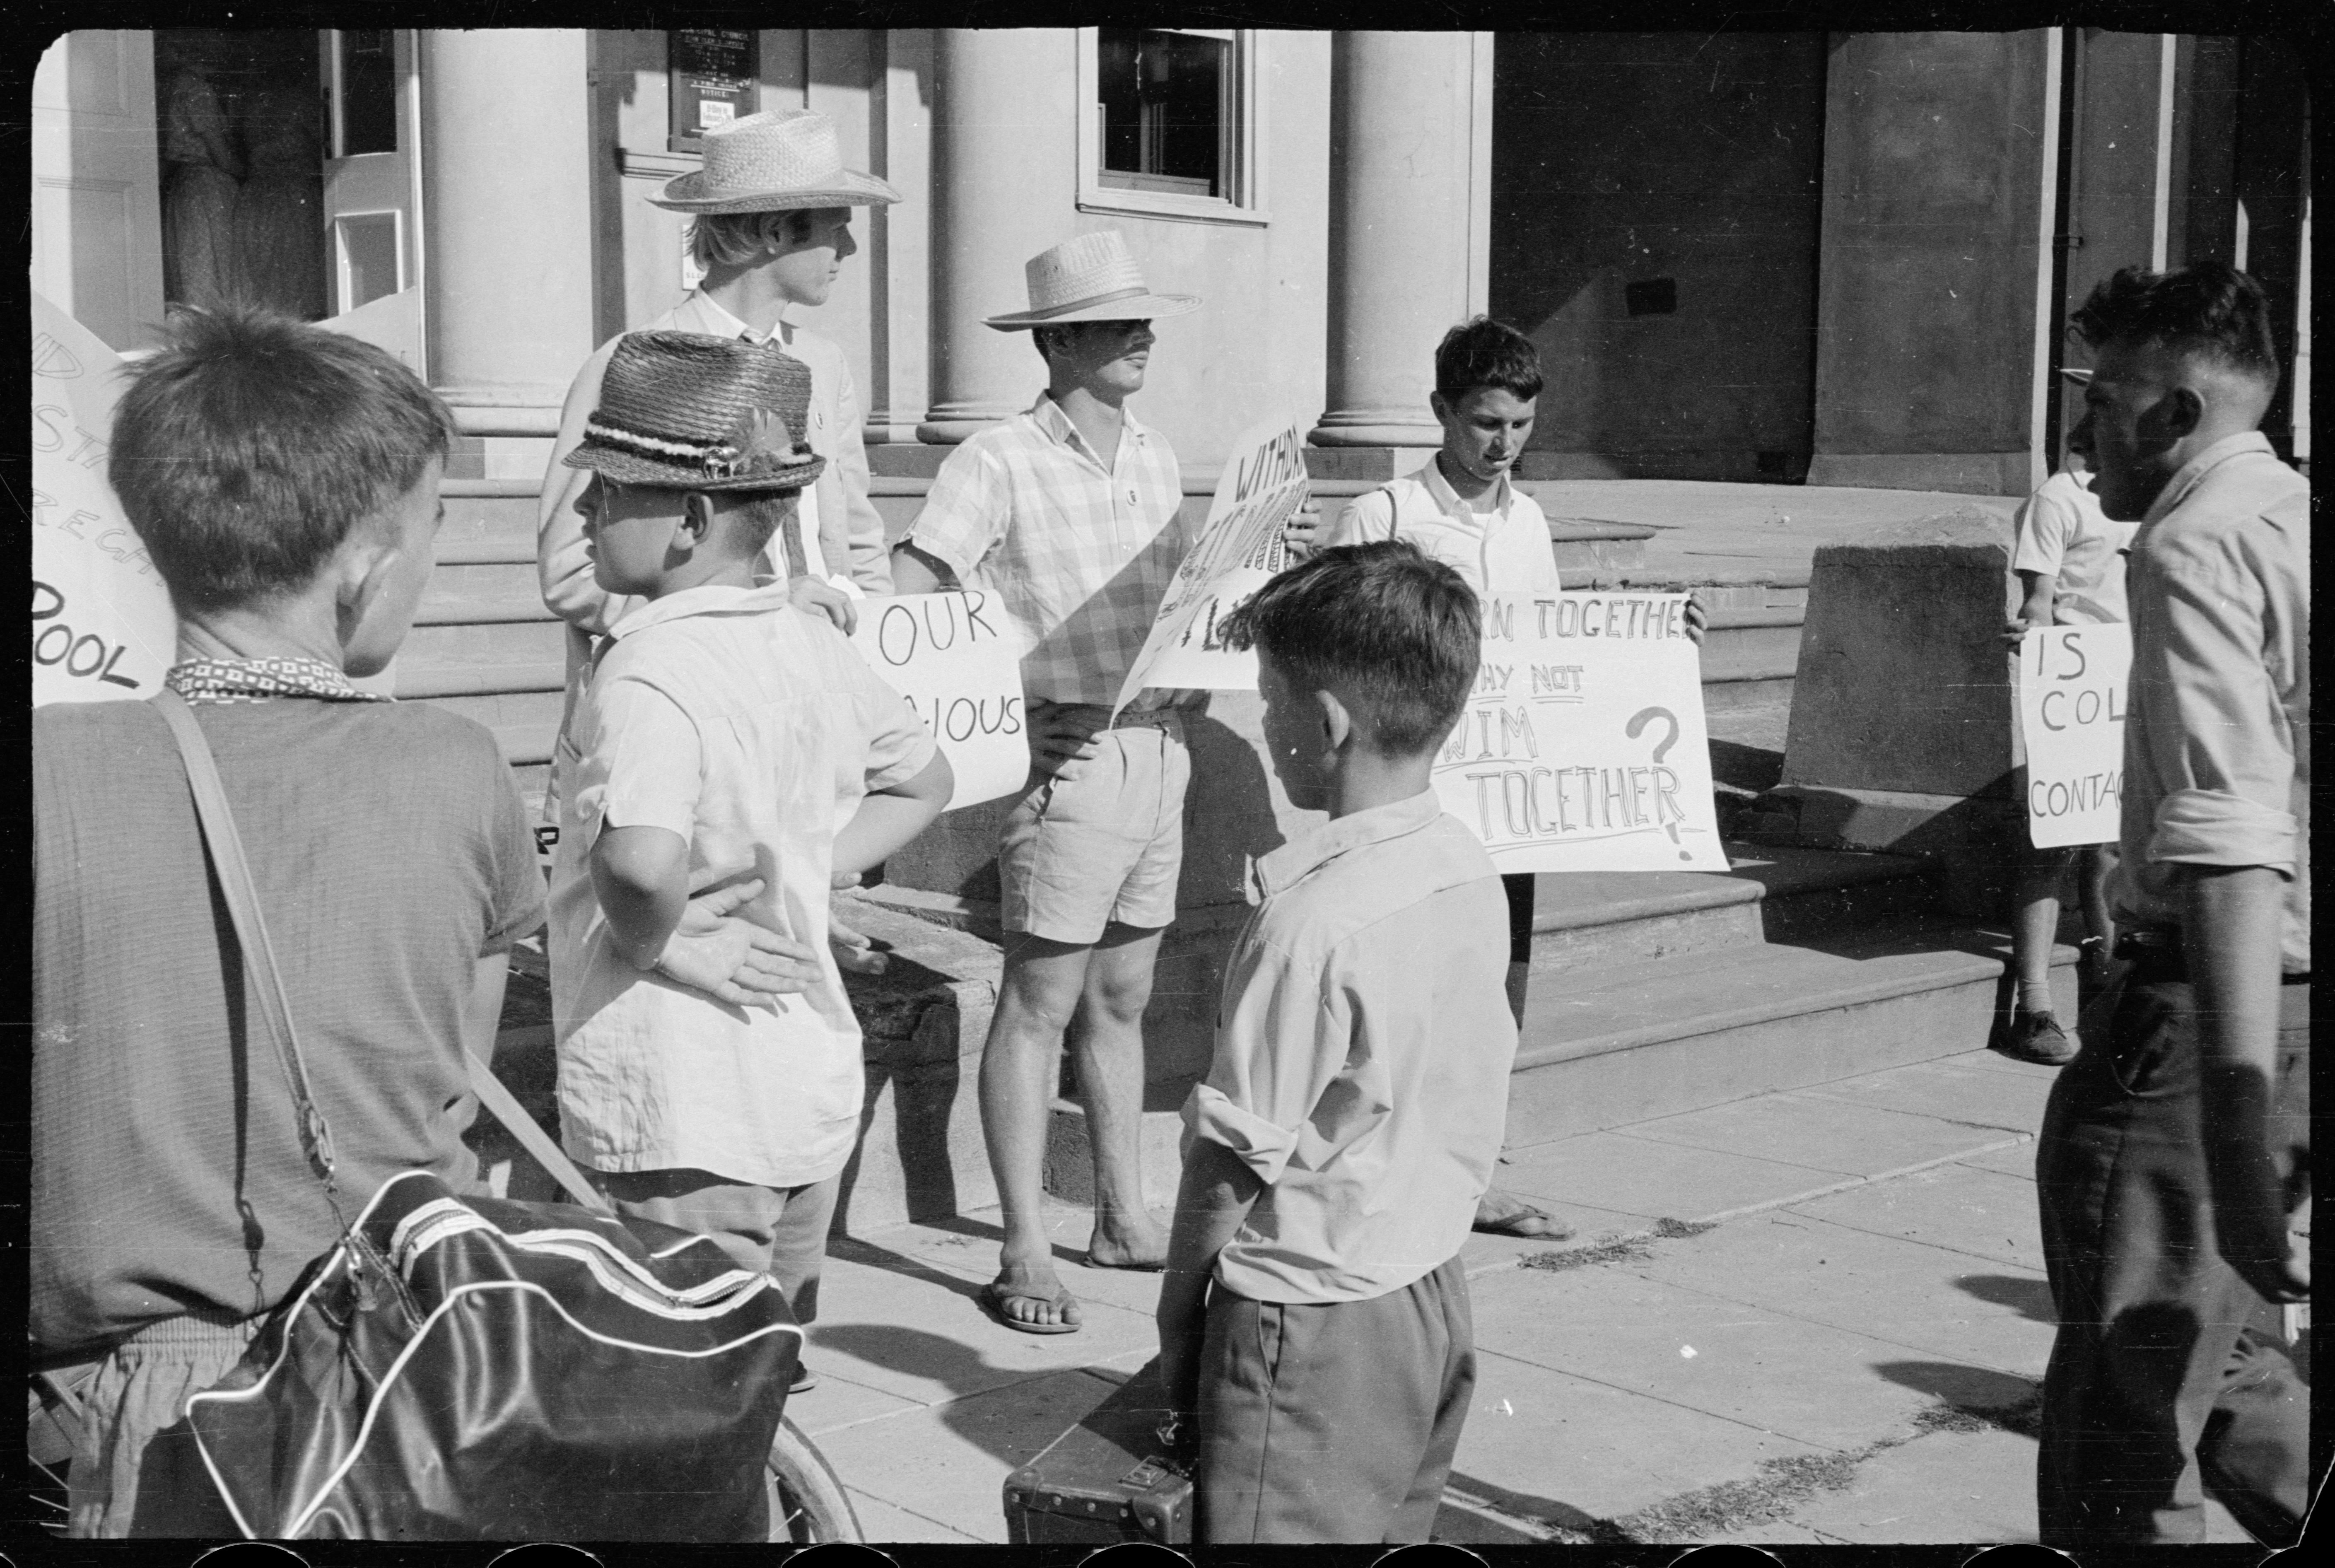 Student Action for Aborigines protest outside Moree Town Hall and Council Chambers, February 1965 / The Tribune